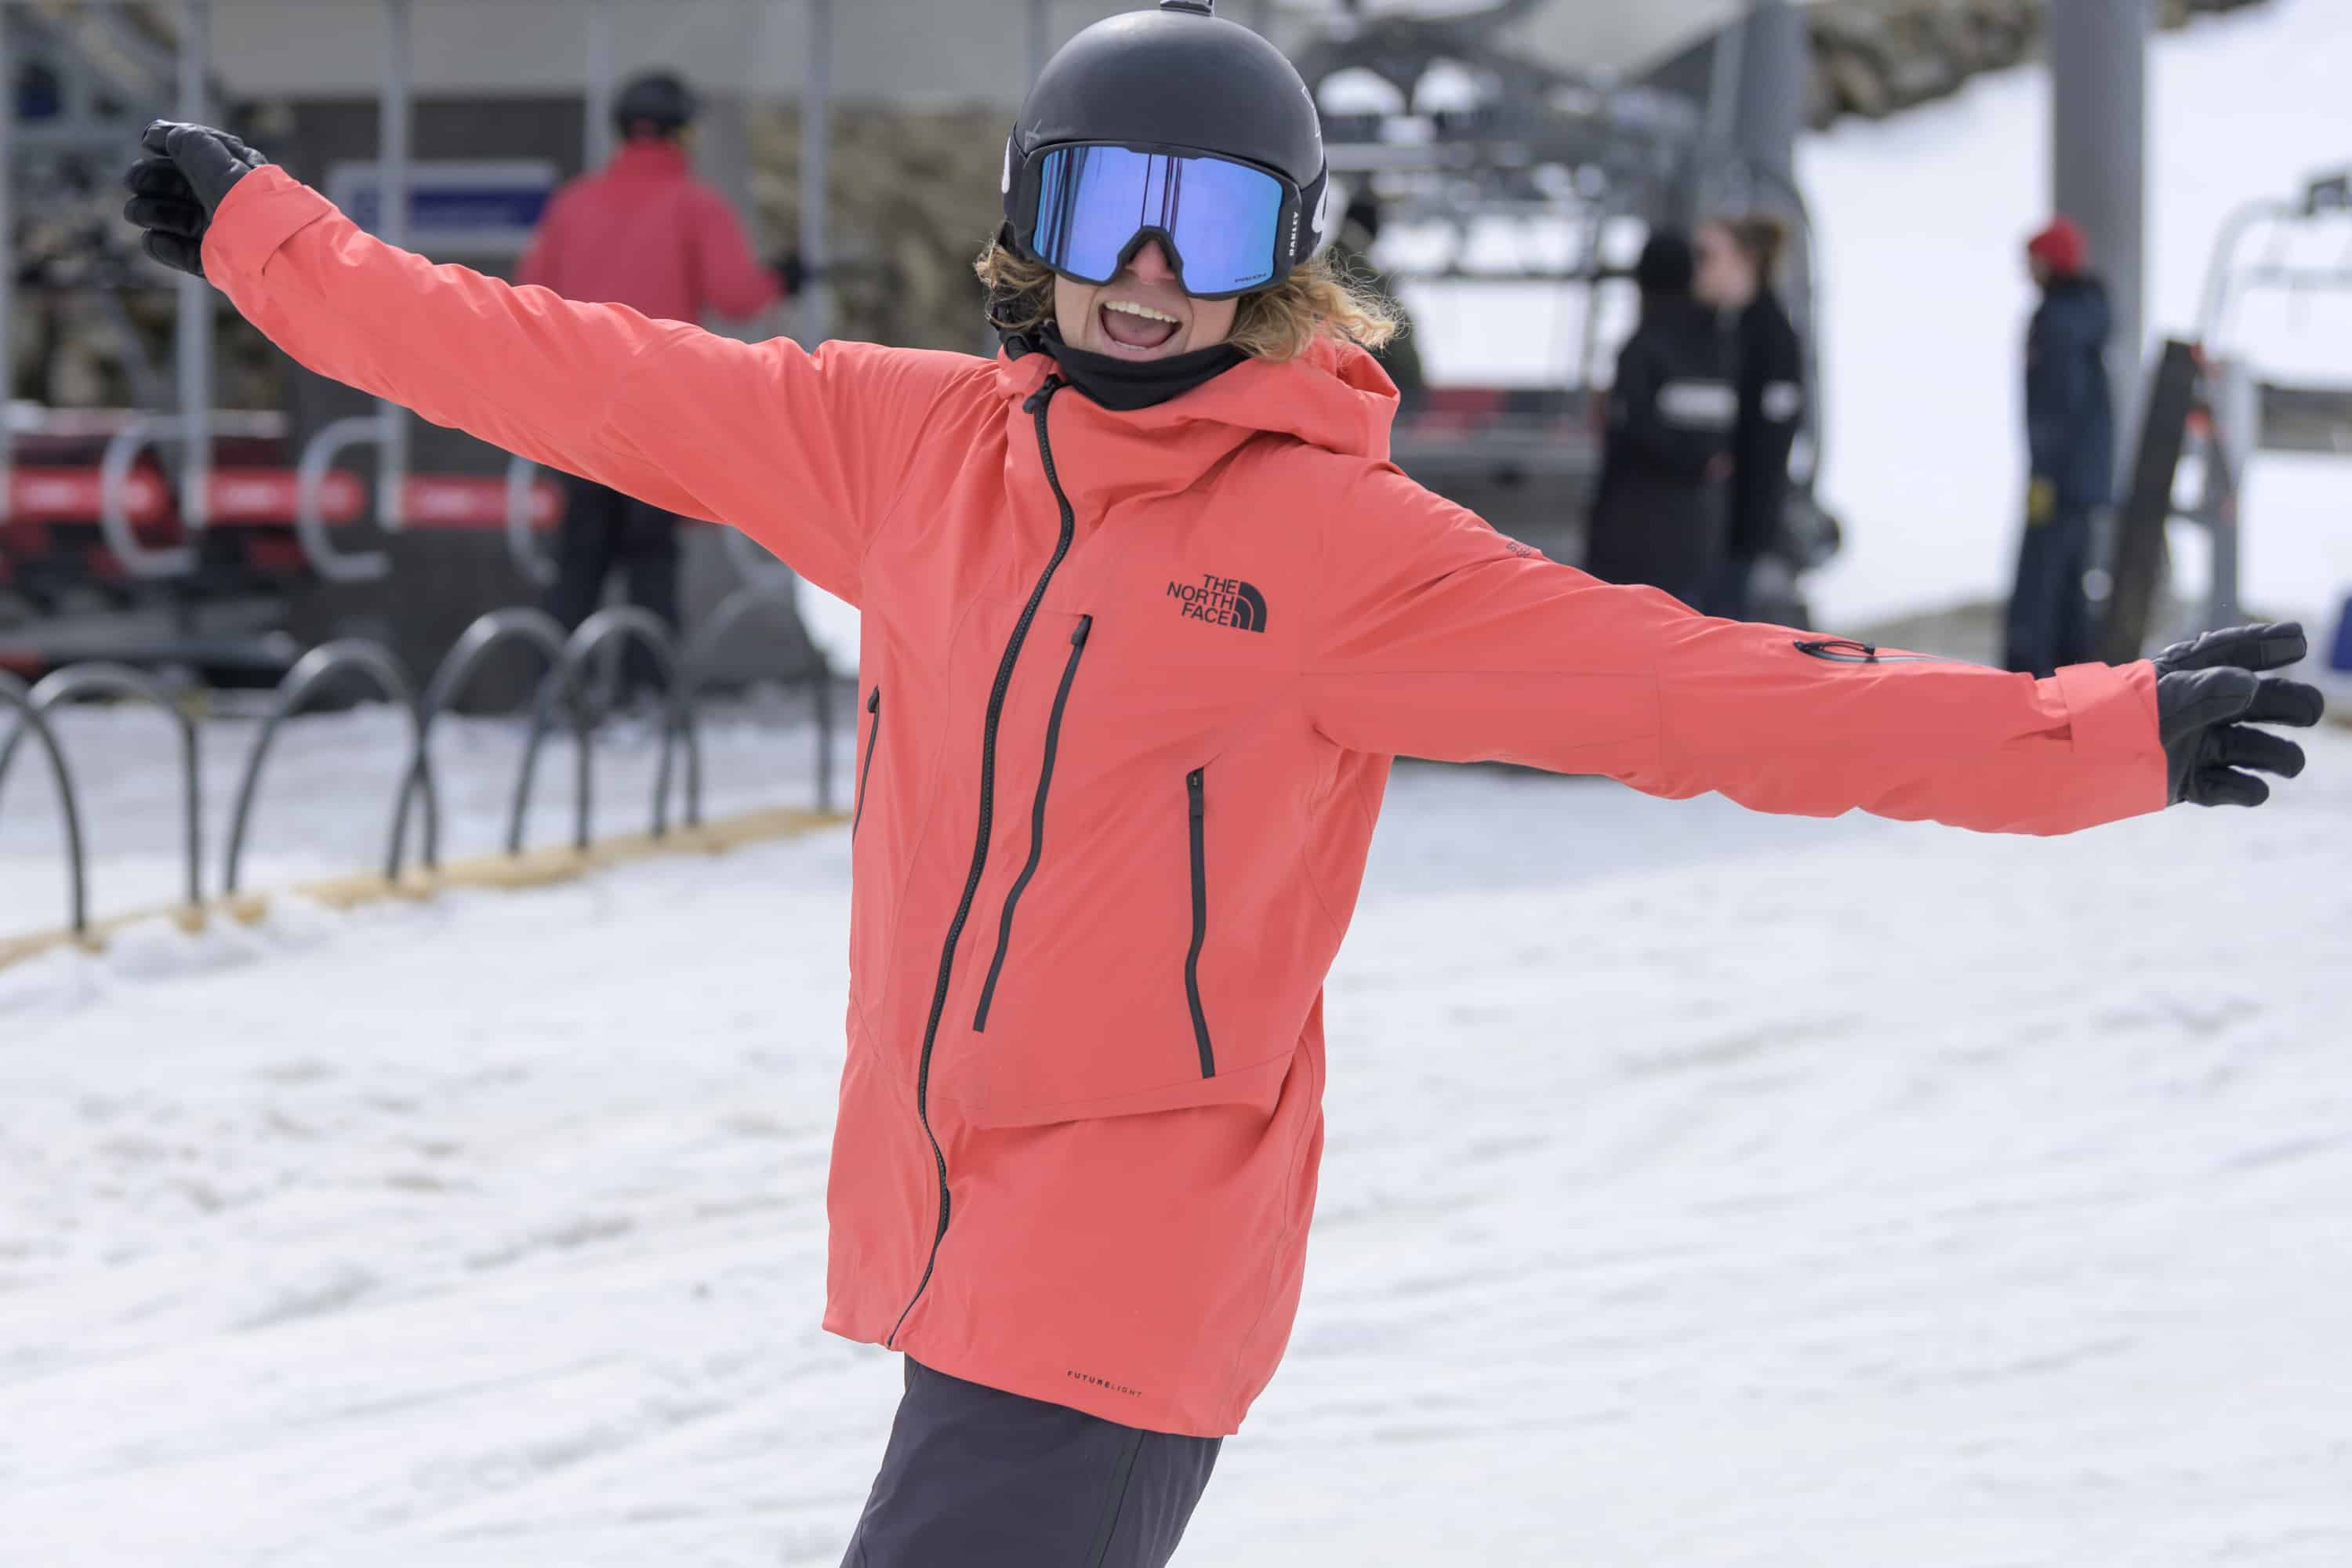 Michaela Davis-Meehan, A Big Season Ahead as the Aussie Snowboarder Chases a World Title On The Freeride World Tour